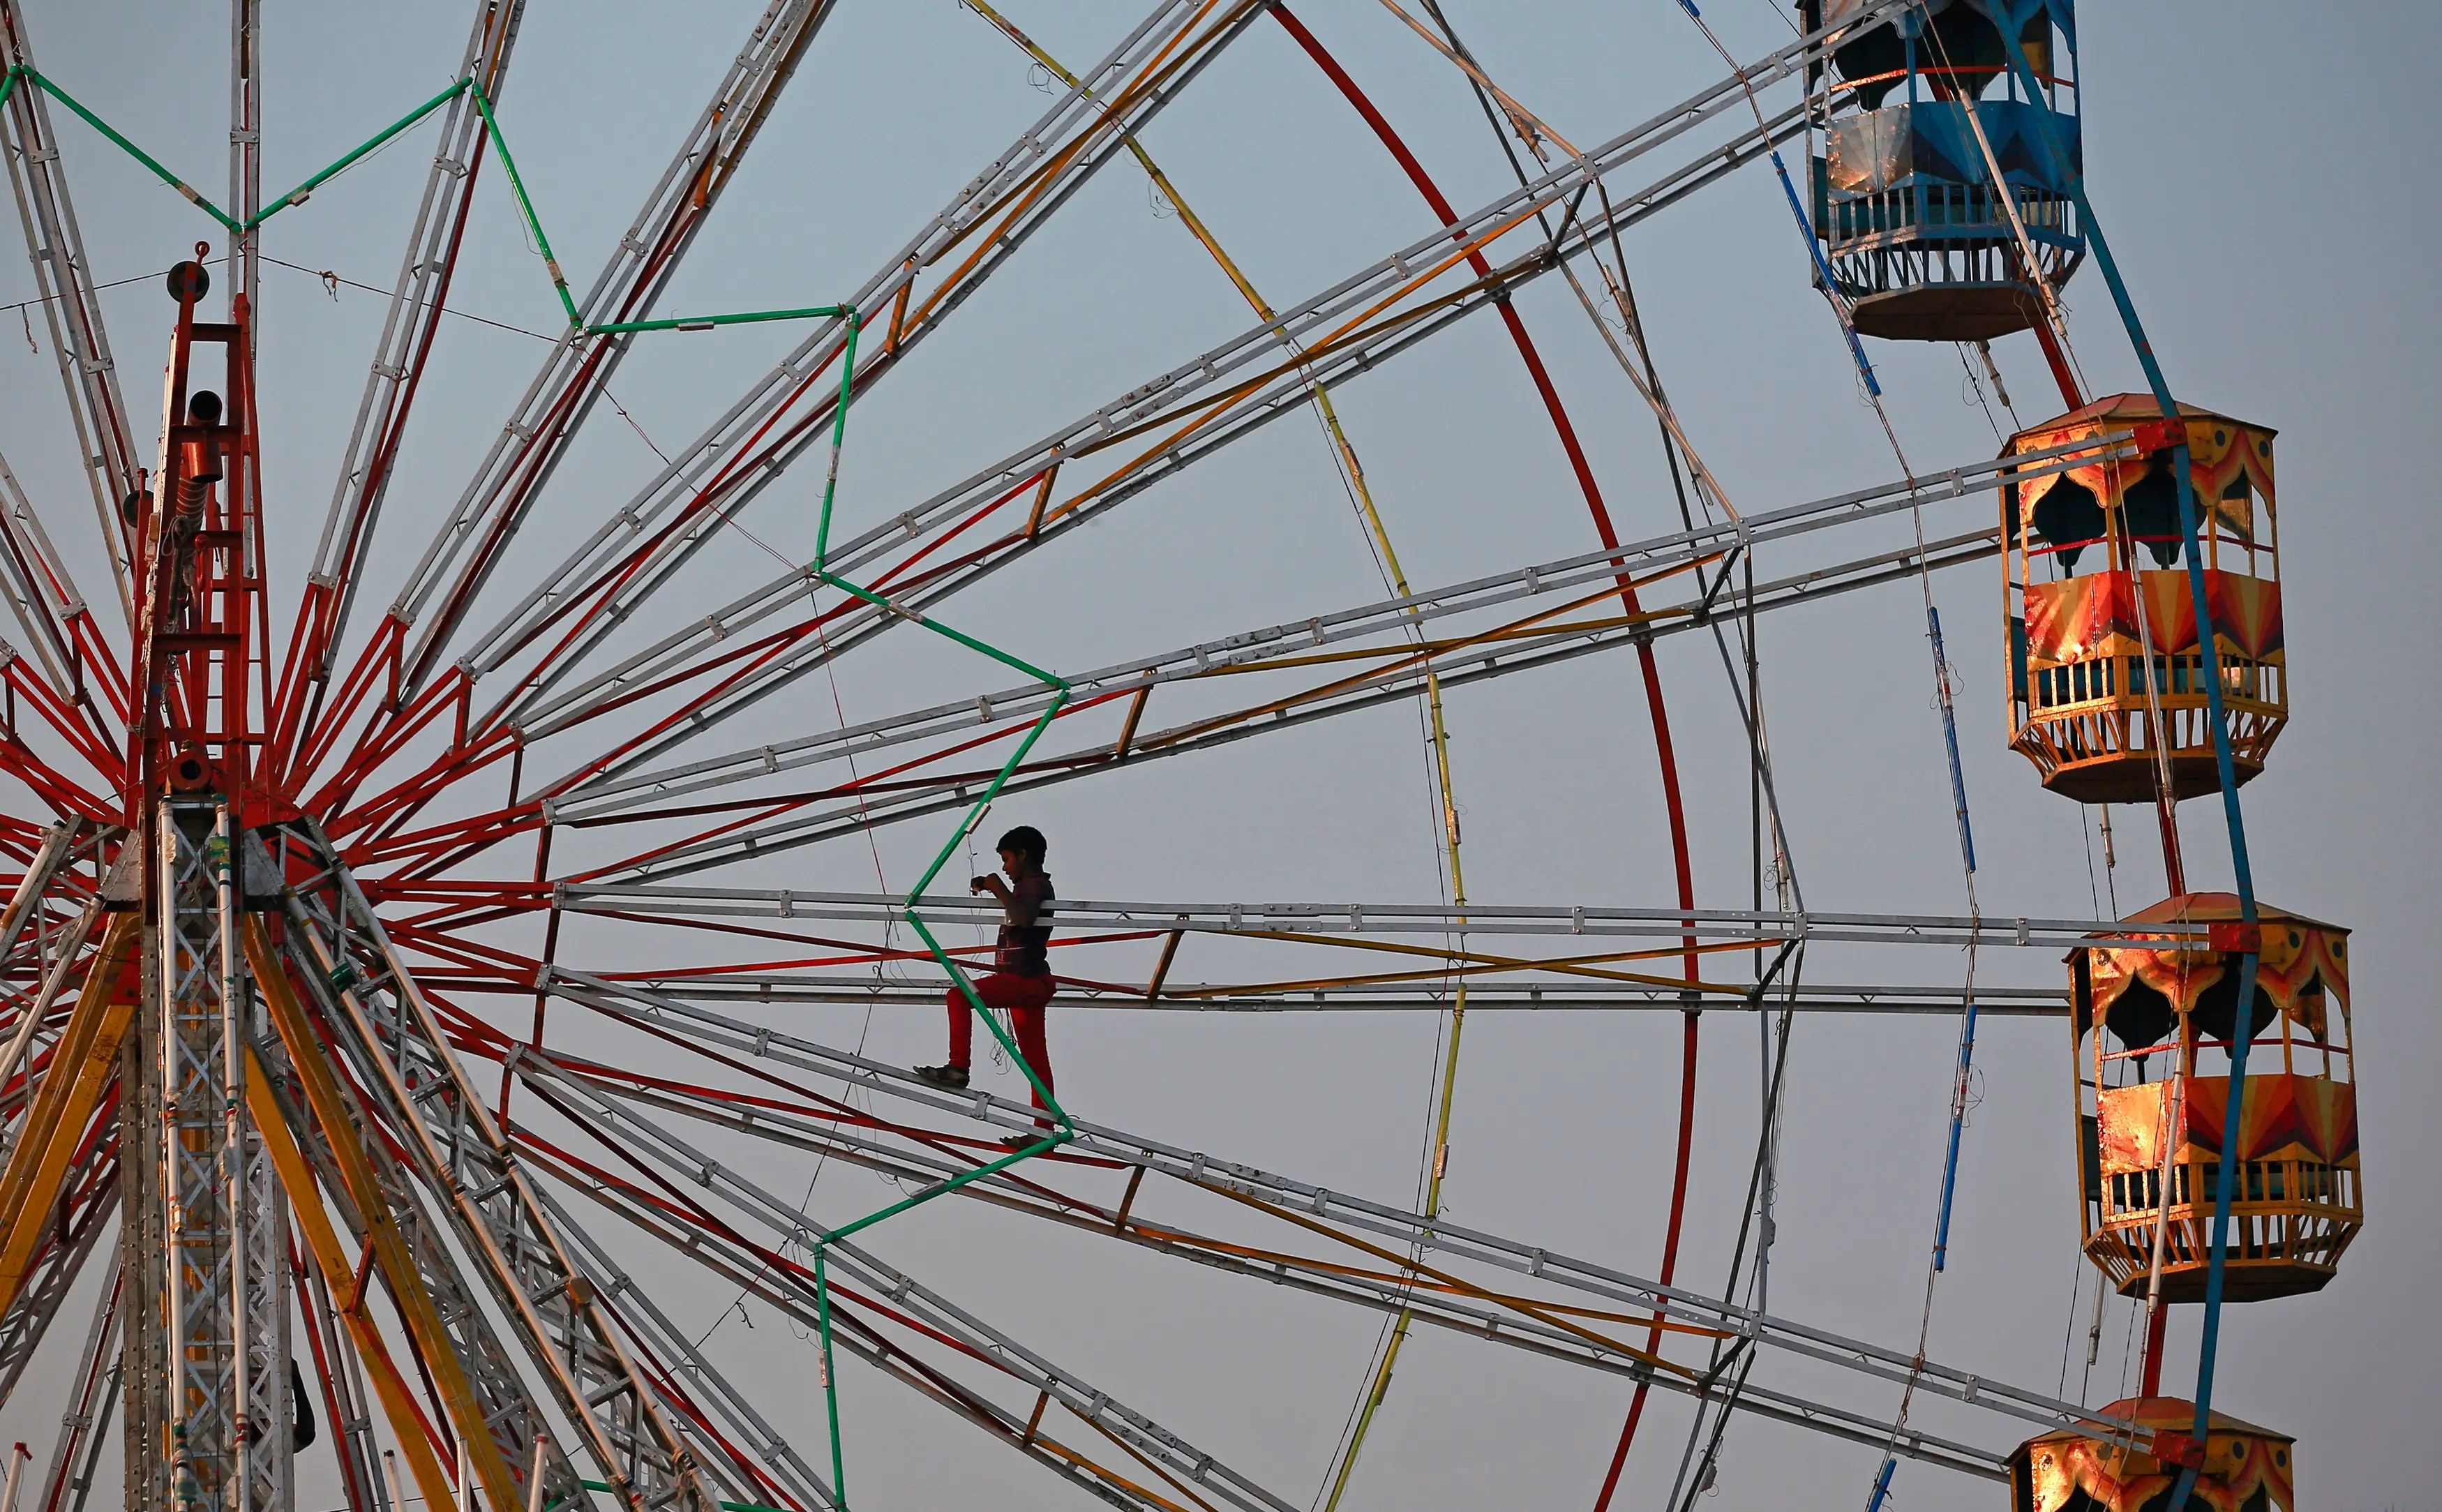 A worker installs lights while standing on a Ferris wheel at a fair in Mumbai.